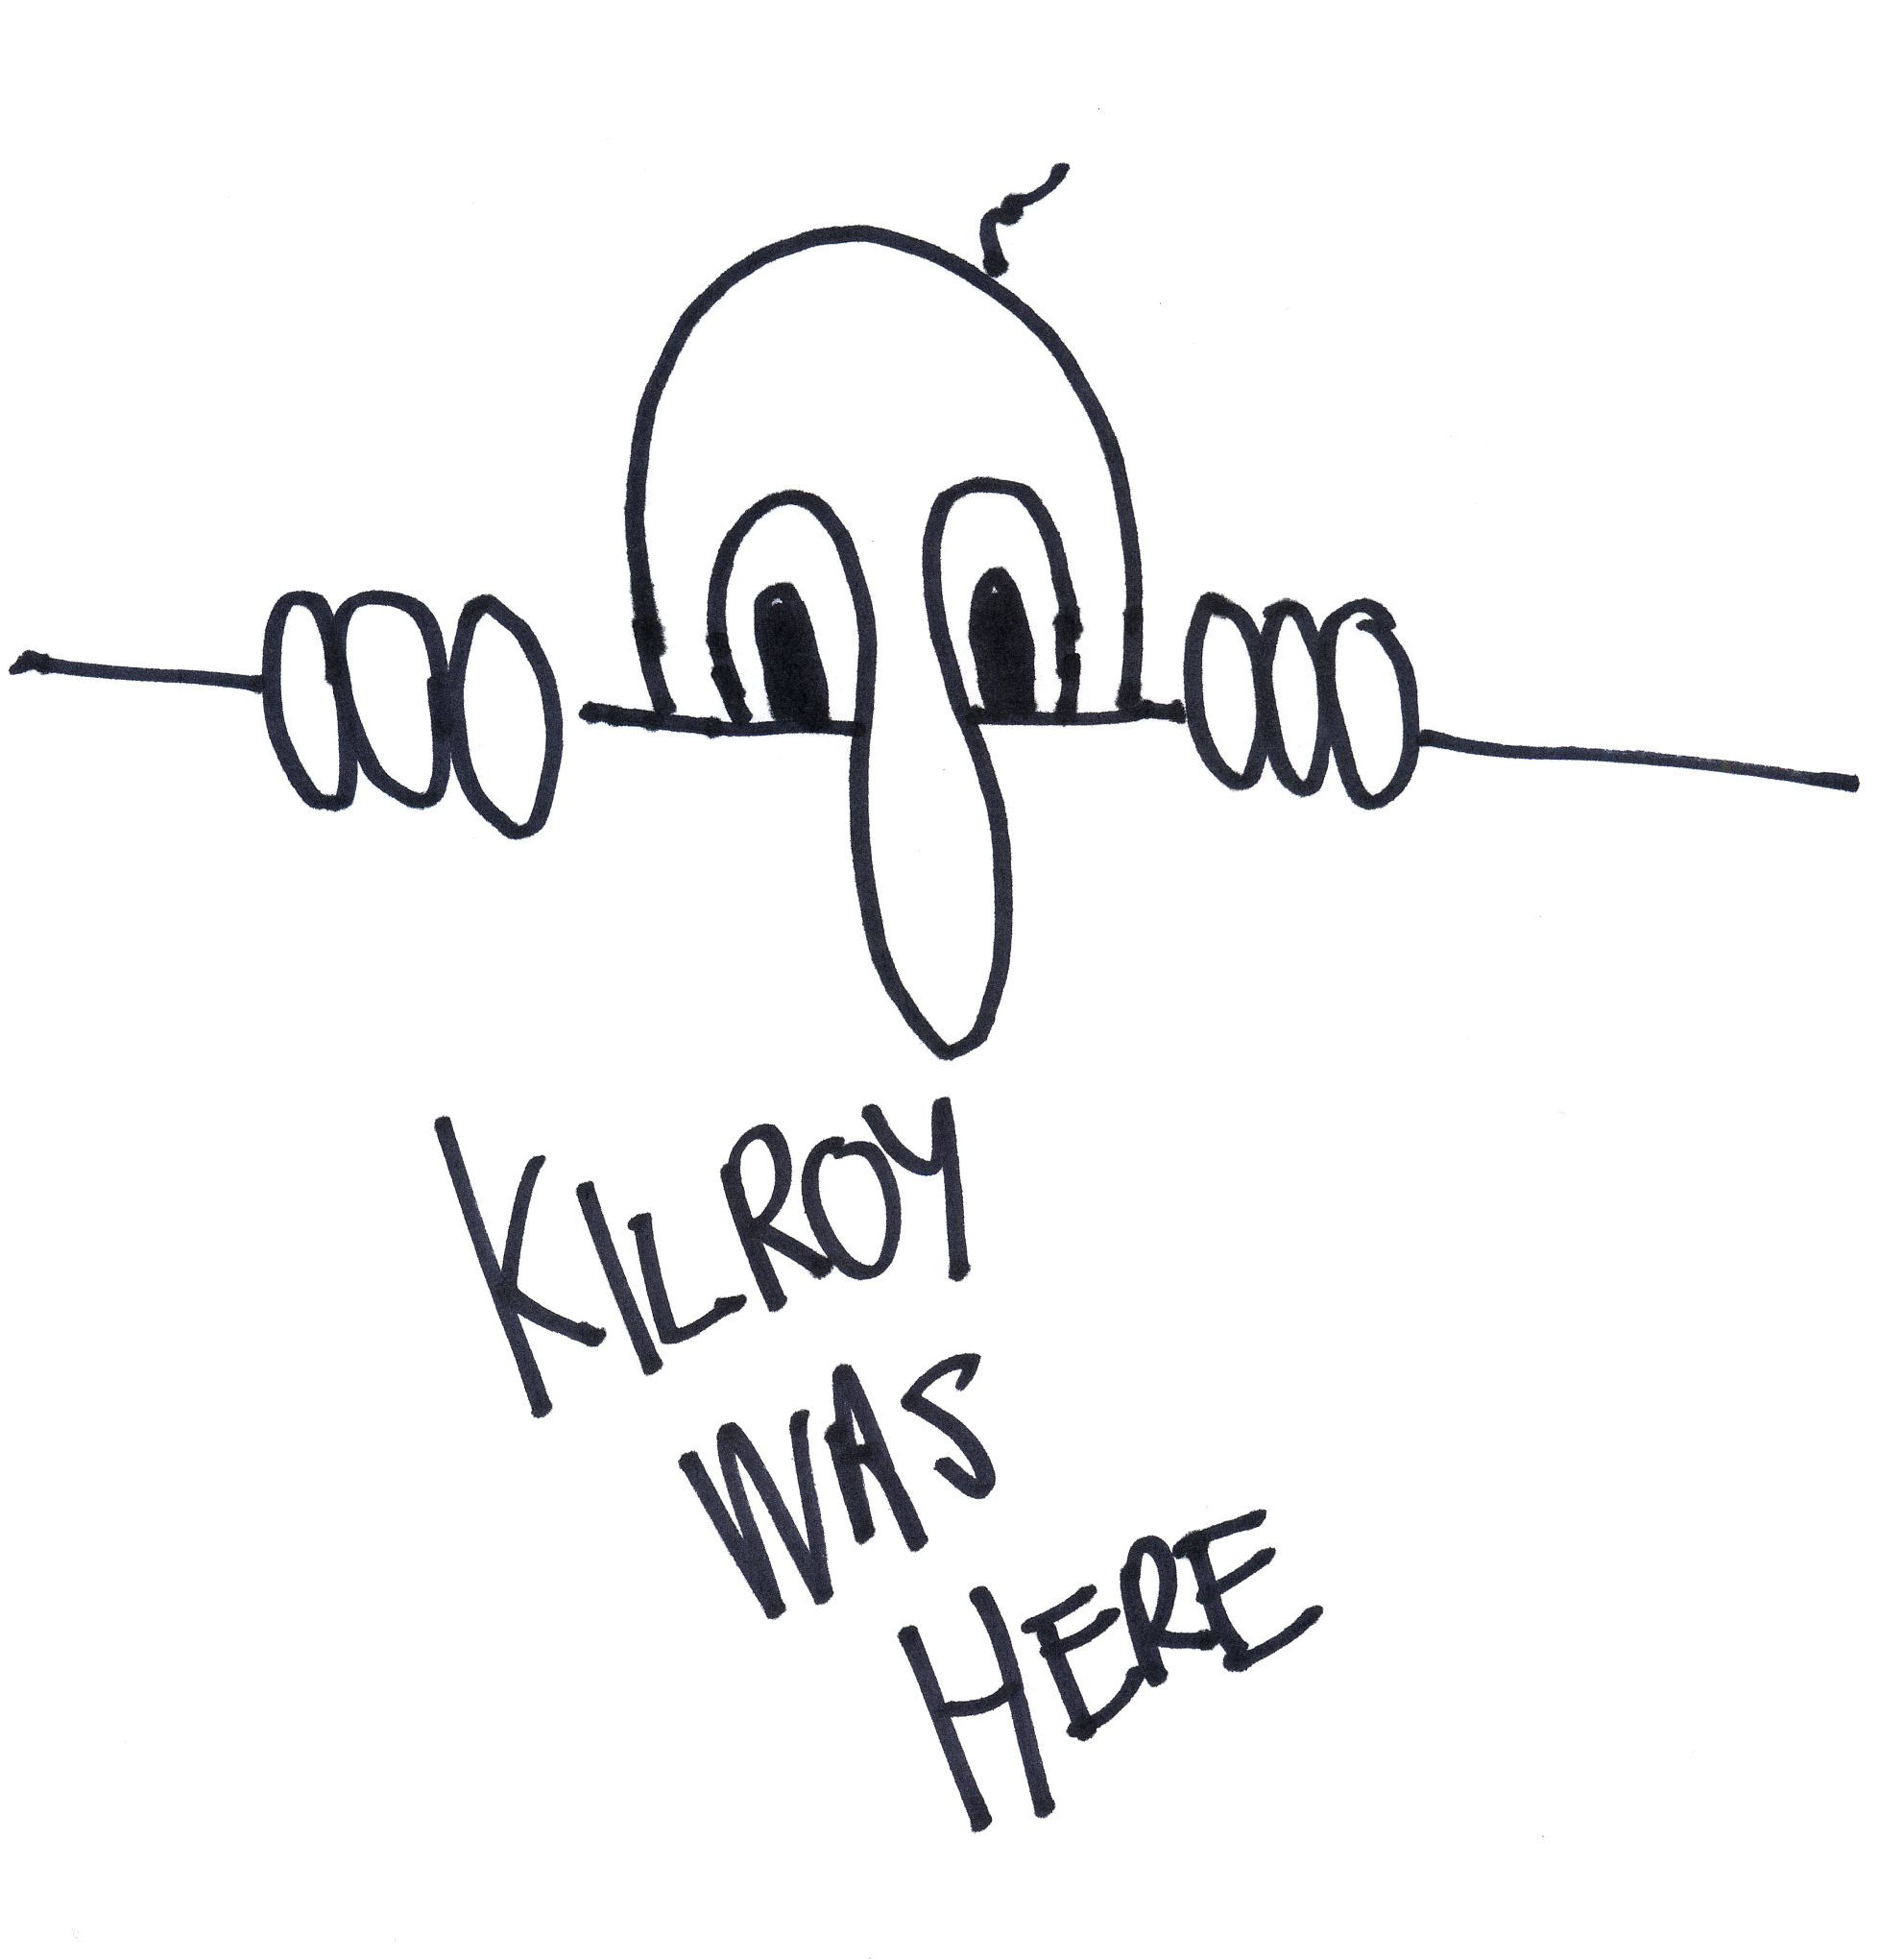 The origins of kilroy was here unproven during world war ii kilroy became a symbol of the presence of american gis and a smiling suggestion that he had gotten there first buycottarizona Gallery